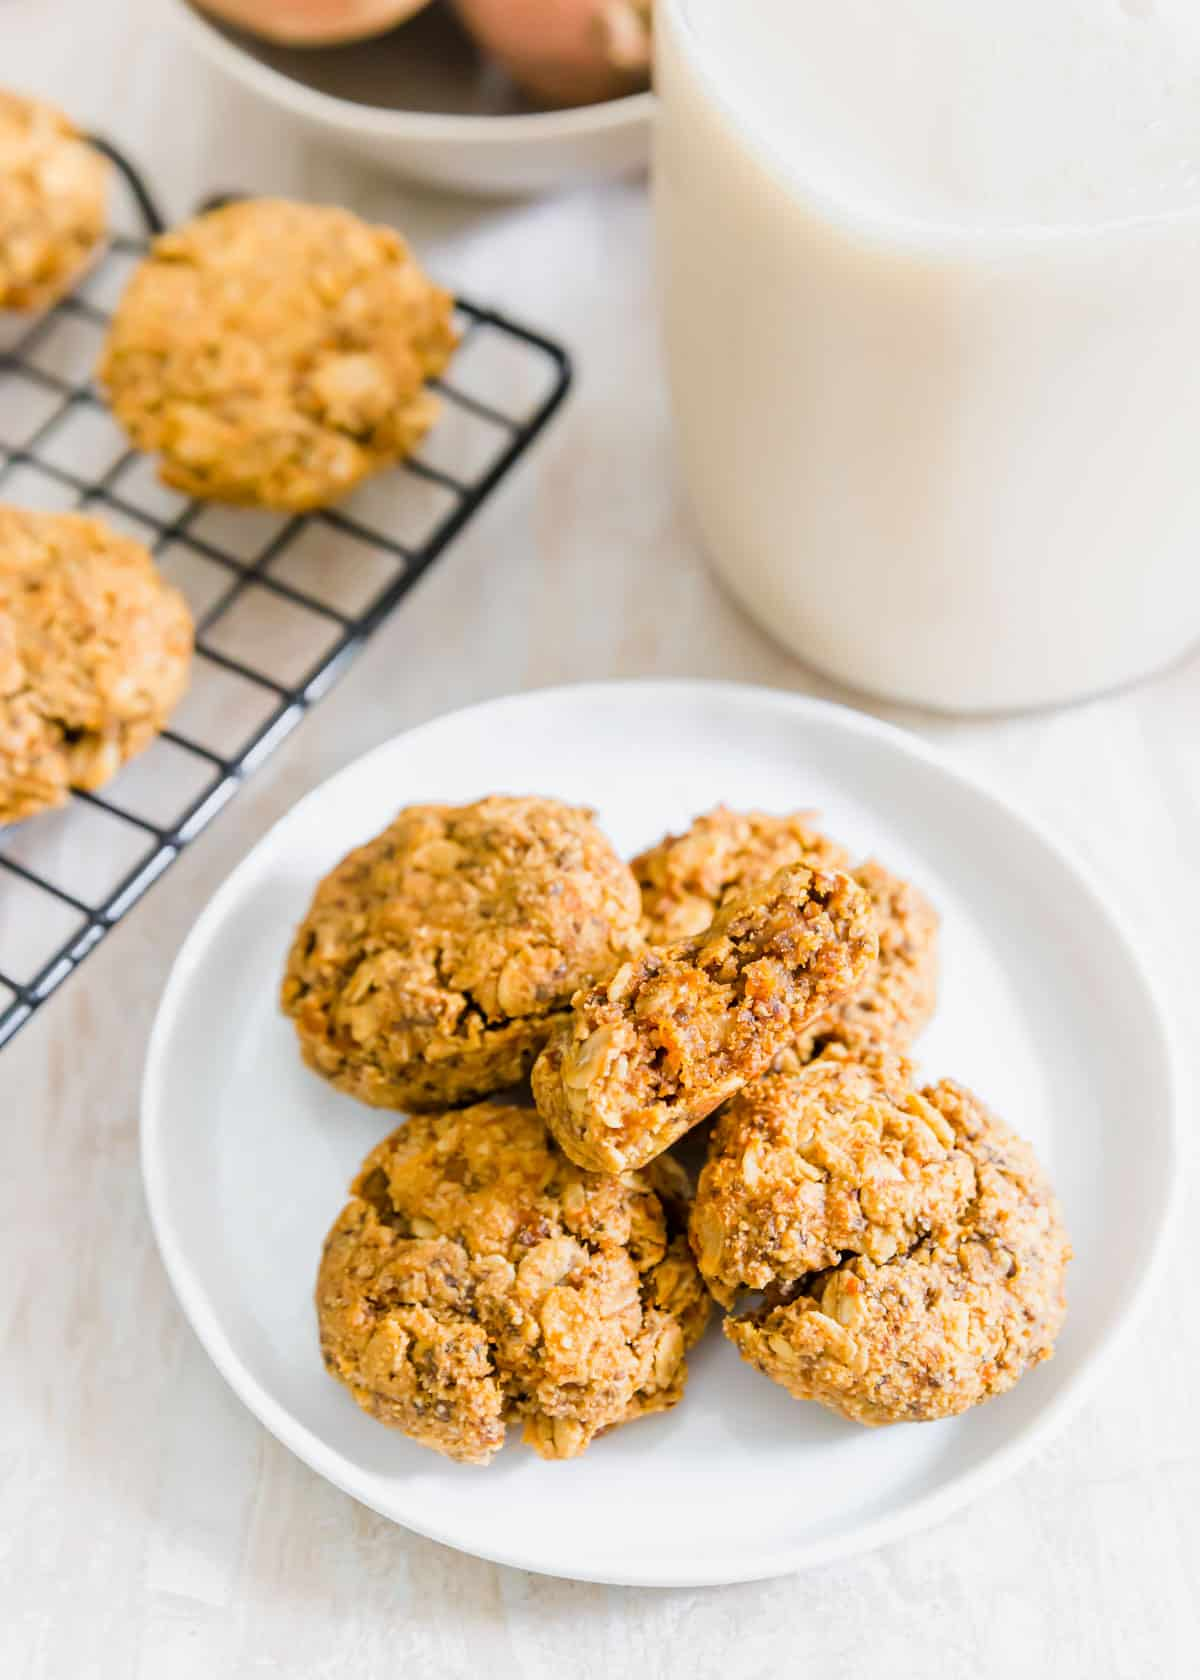 Chewy and hearty oat based sweet potato cookies with cinnamon spices